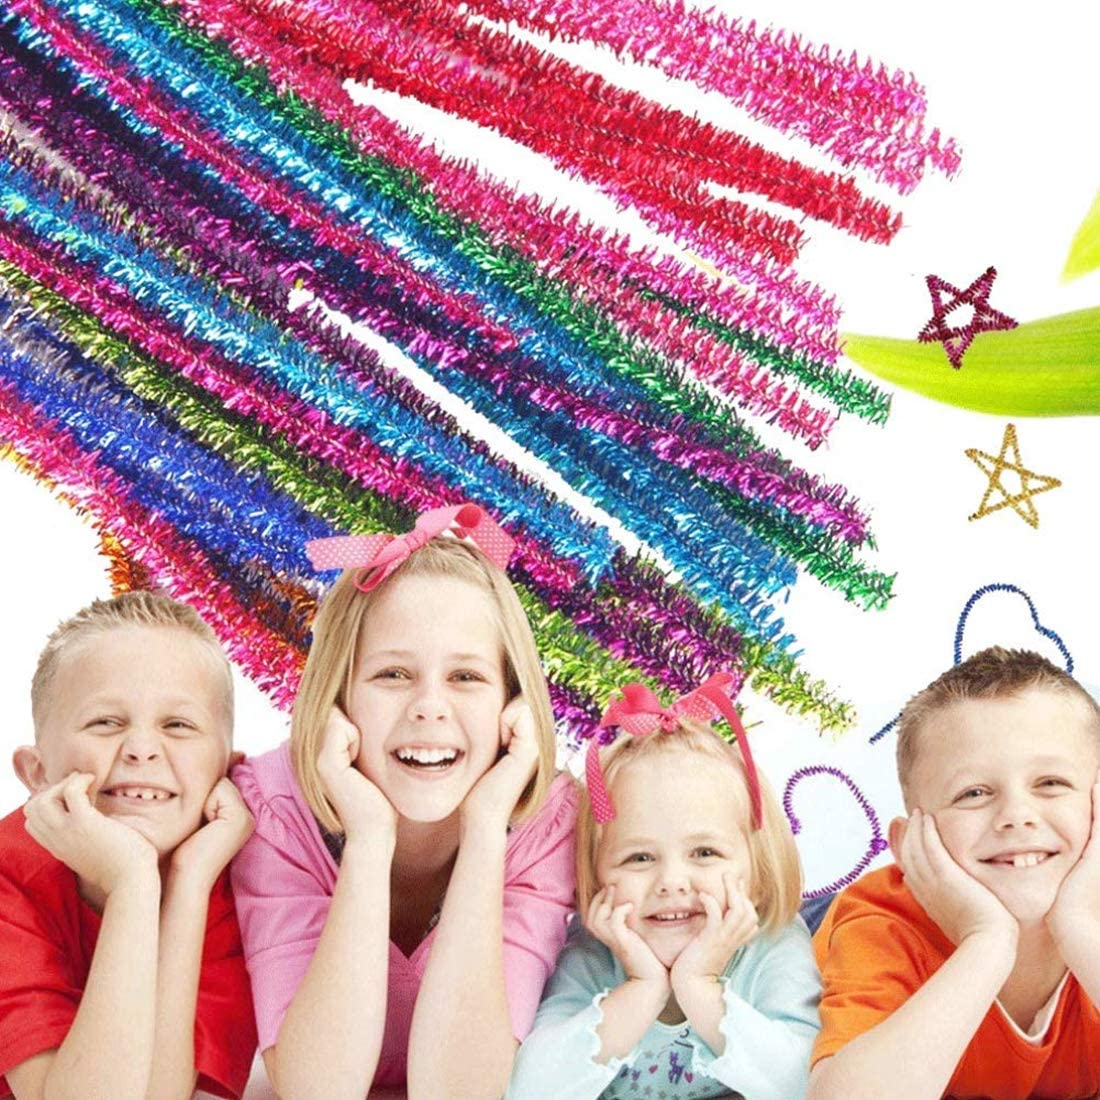 School Projec Crafts /& Decorations Assorted Pom Pom Balls Craft Kit with 6 Sizes Pompoms,2 Sizes Multicolor Glitter Pompoms,4 Sizes Wiggle Eyes,2 Sizes Mascara Eyes for for DIY 2100 Pieces Pom Poms